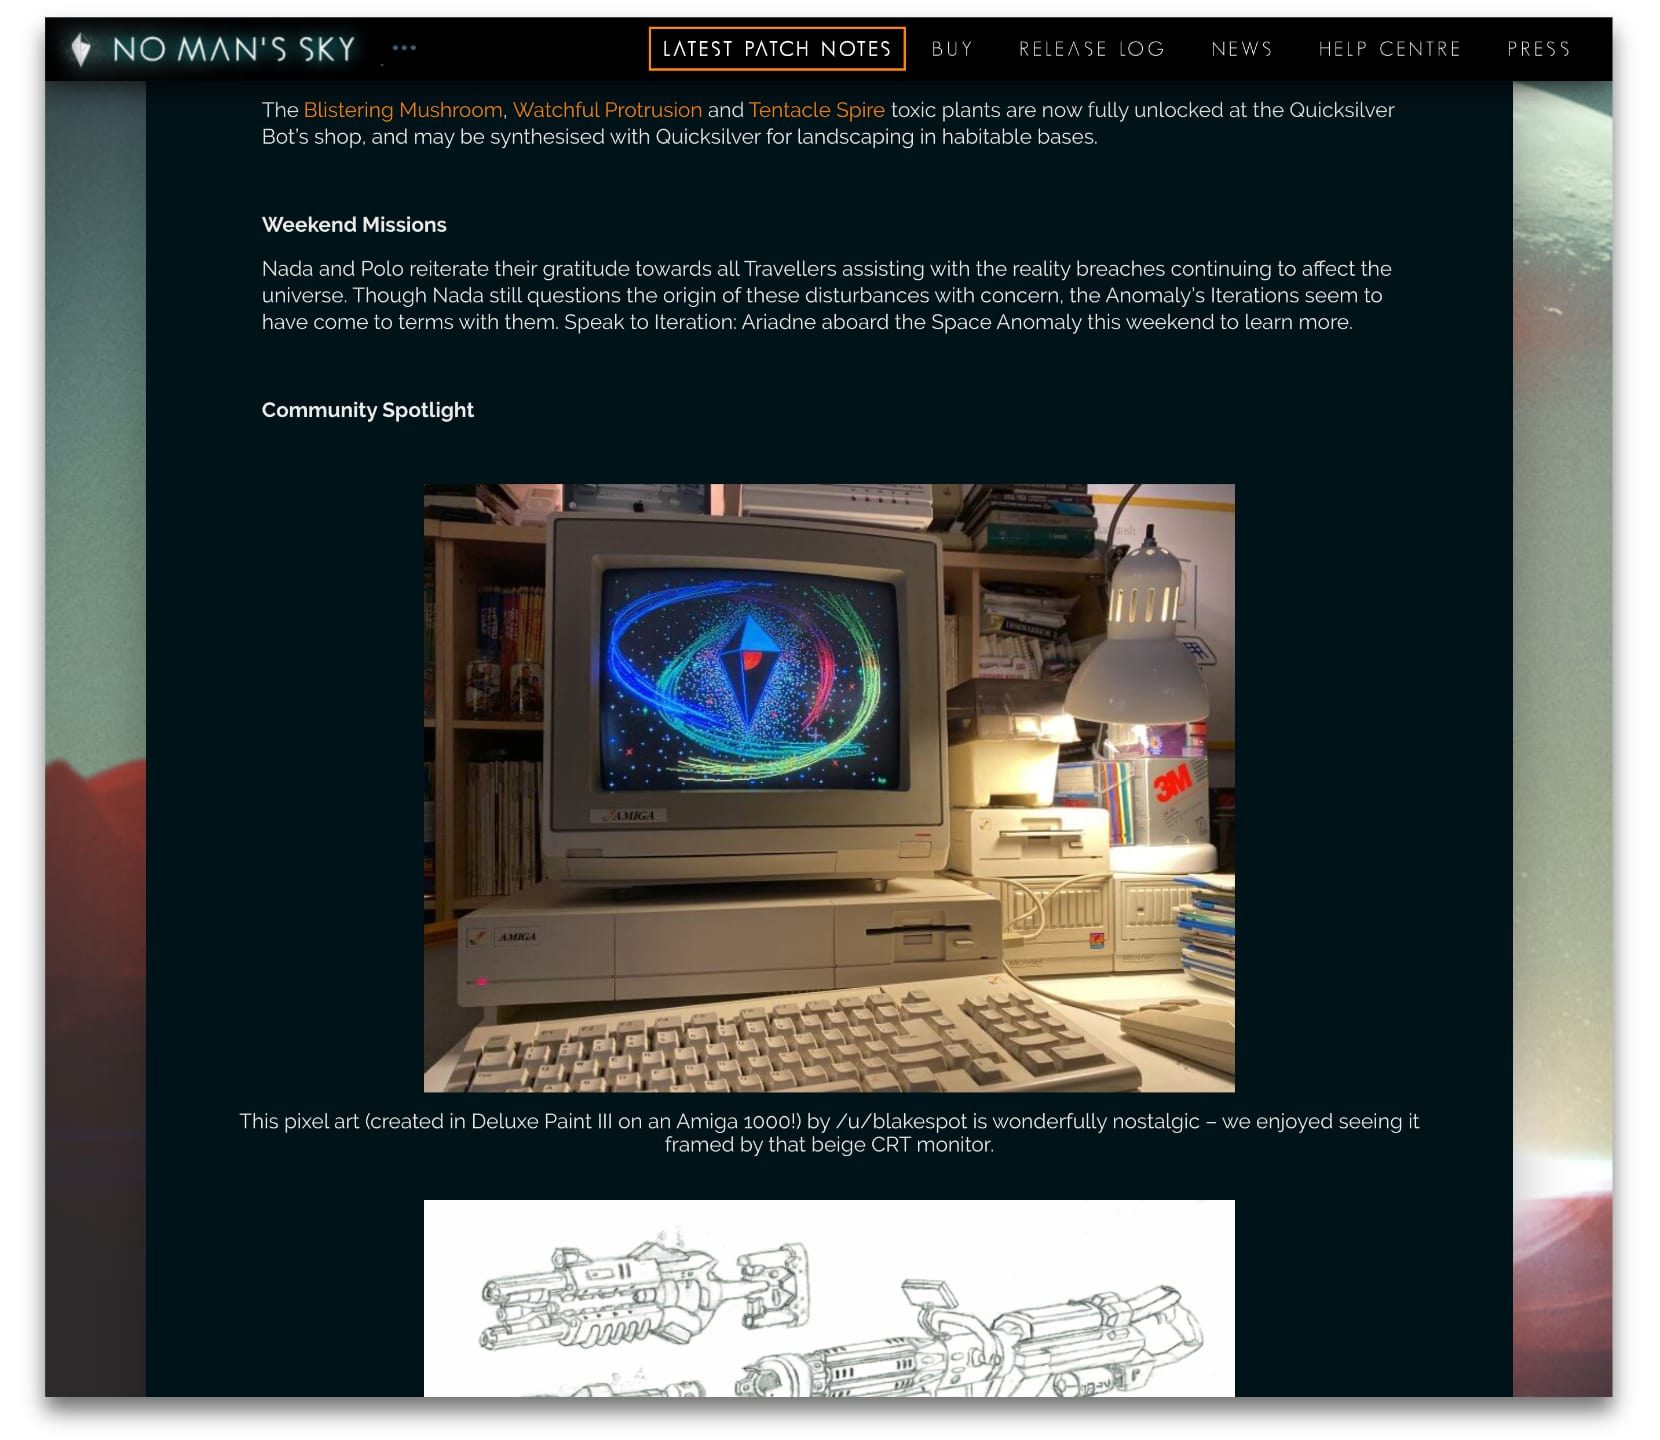 No Man's Sky graphic shown rendered on an Amiga CRT on Hello Games' Community Spotlight website section